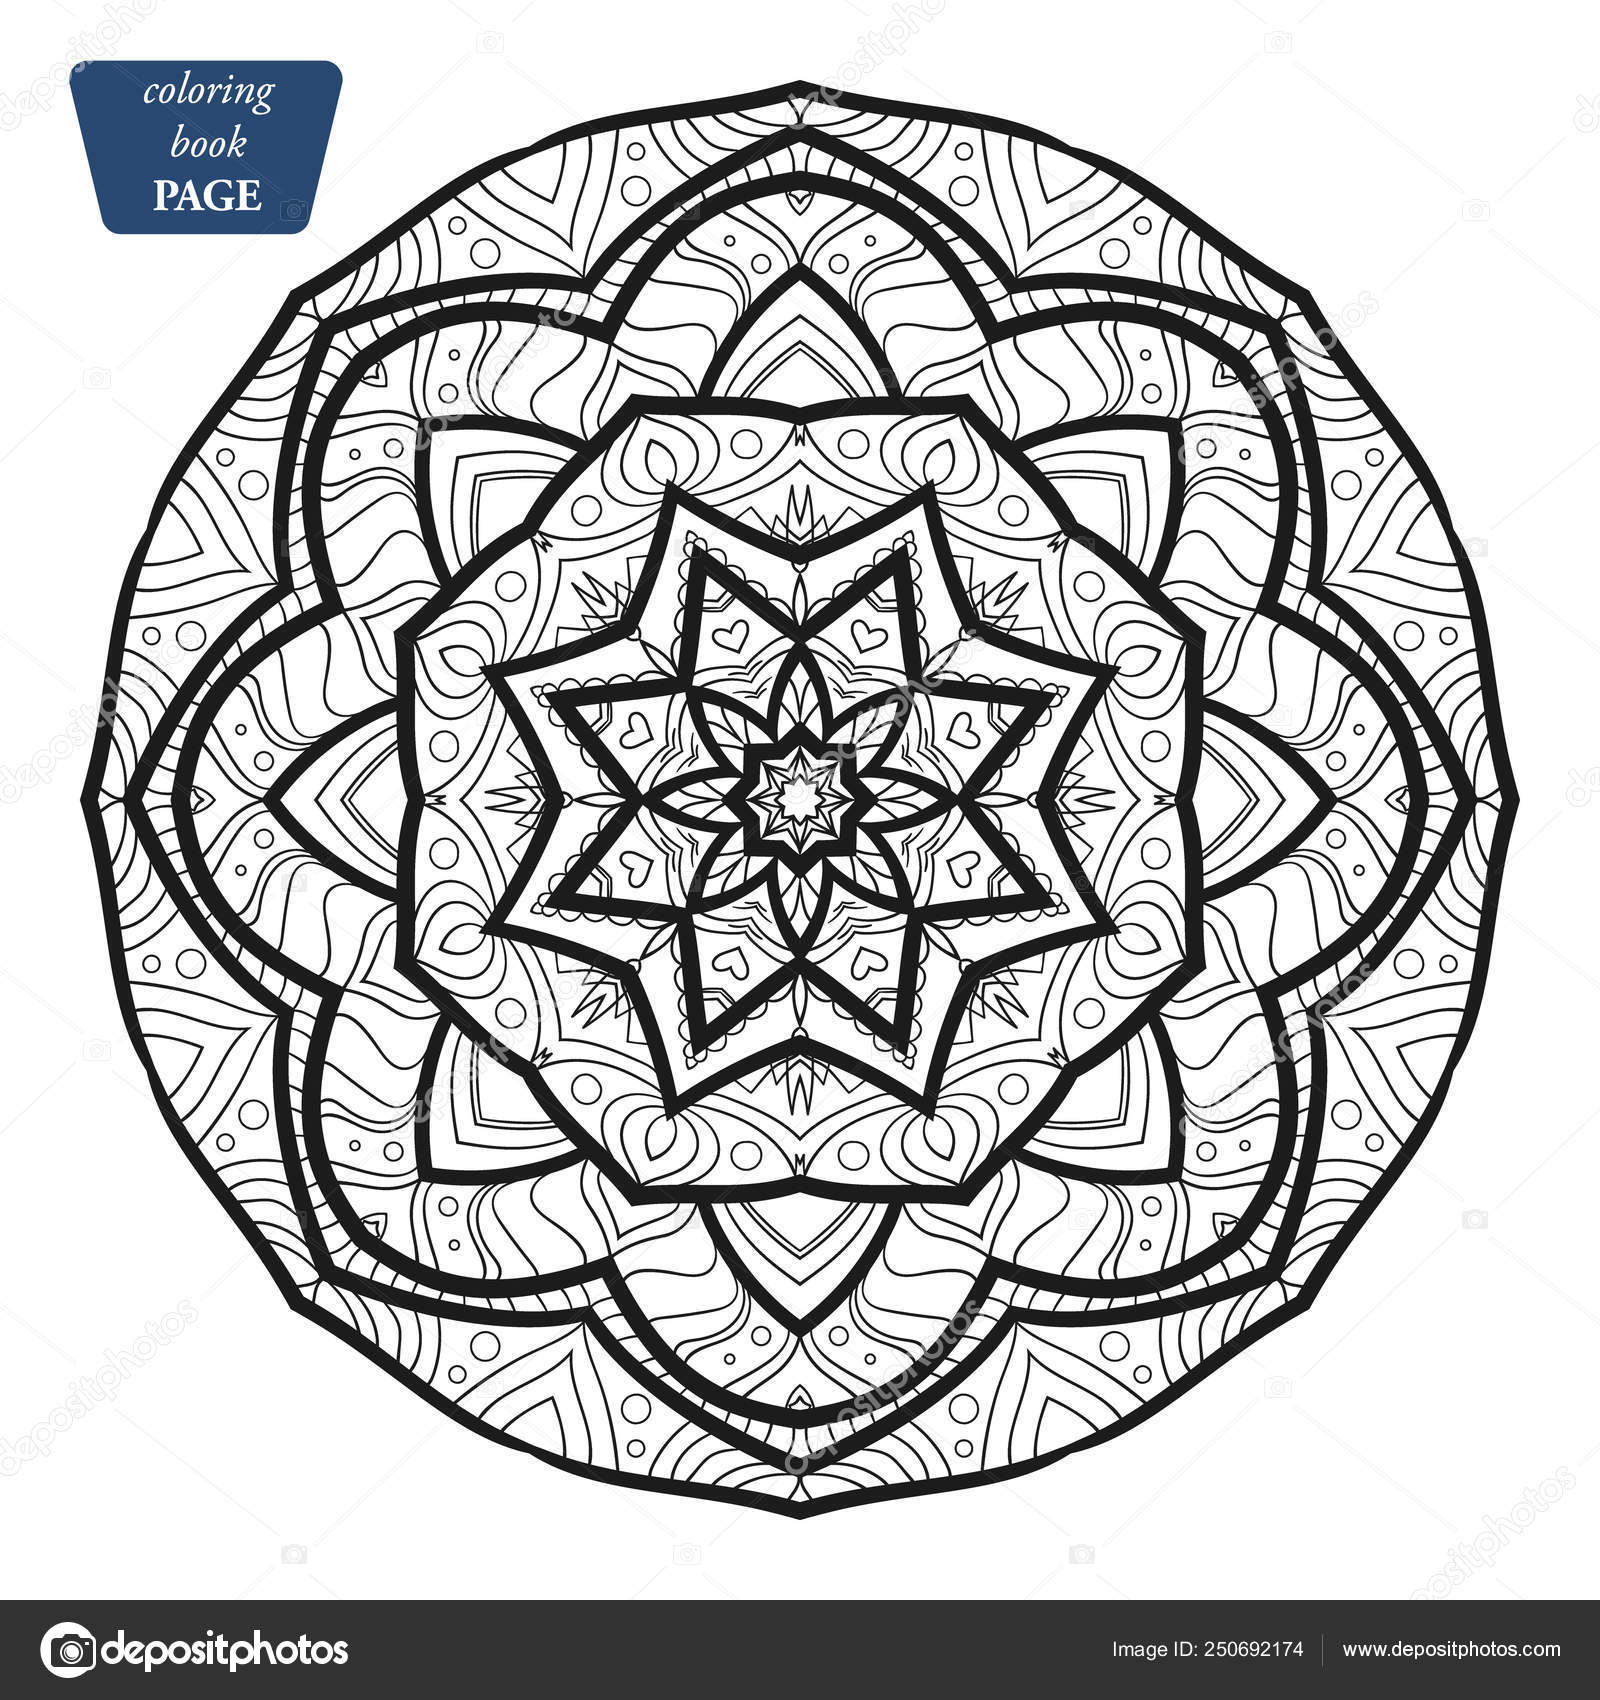 Mandala Coloring Book Pages Indian Antistress Medallion Abstract Islamic Flower Arabic Henna Design Yoga Symbol Vector Illustration G Vector Image By C Veeksegal Vector Stock 250692174